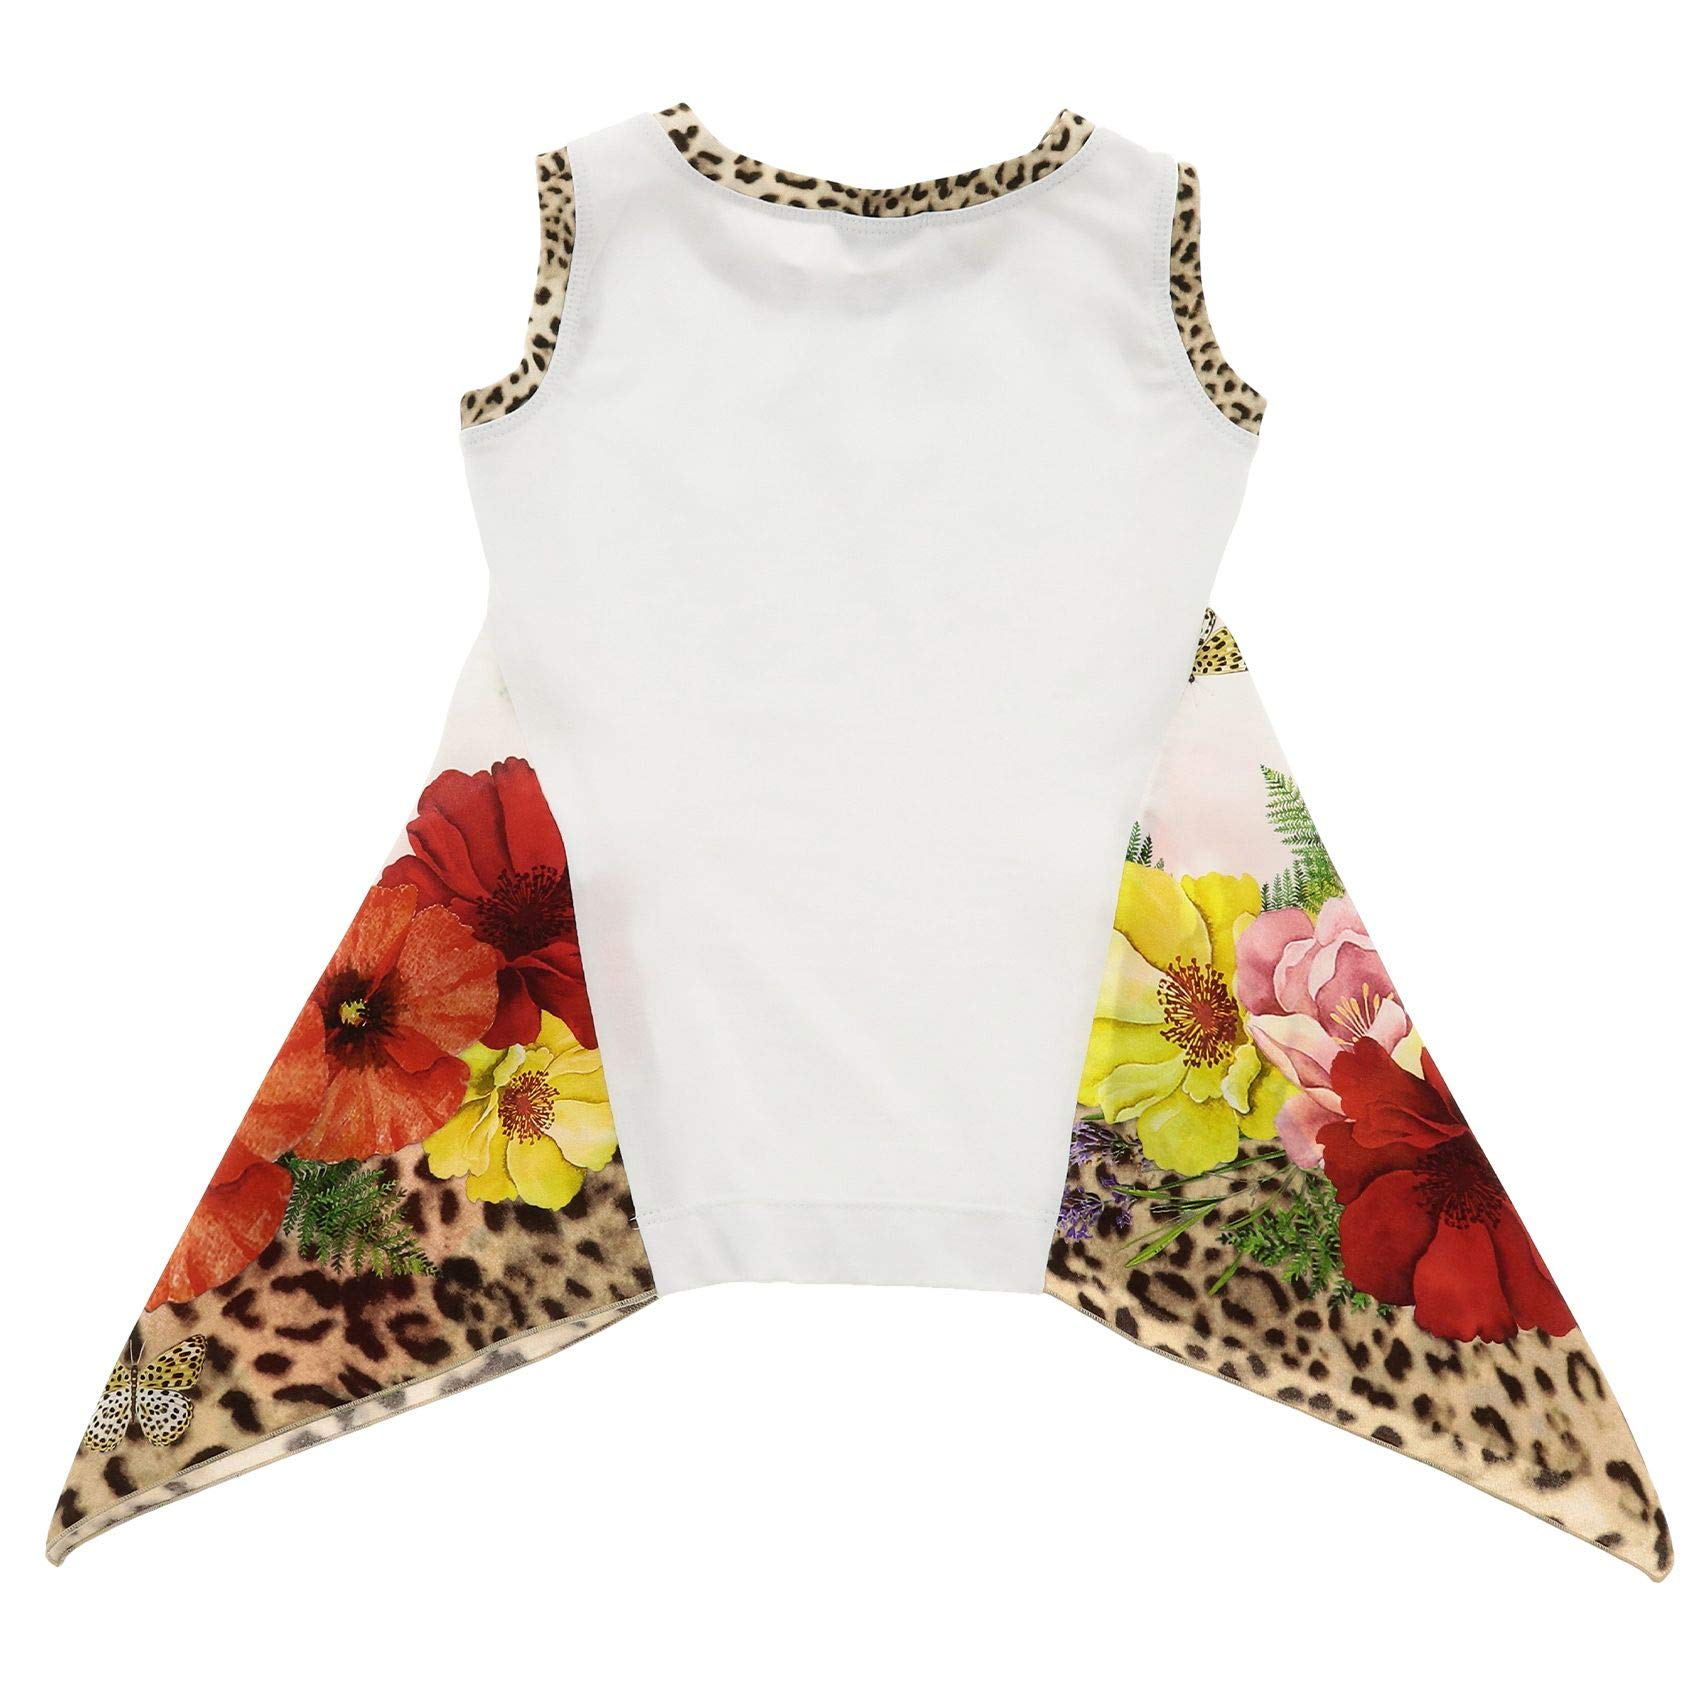 Monnalisa Girls 11363432019980 White Cotton Tank Top by Monnalisa (Image #2)